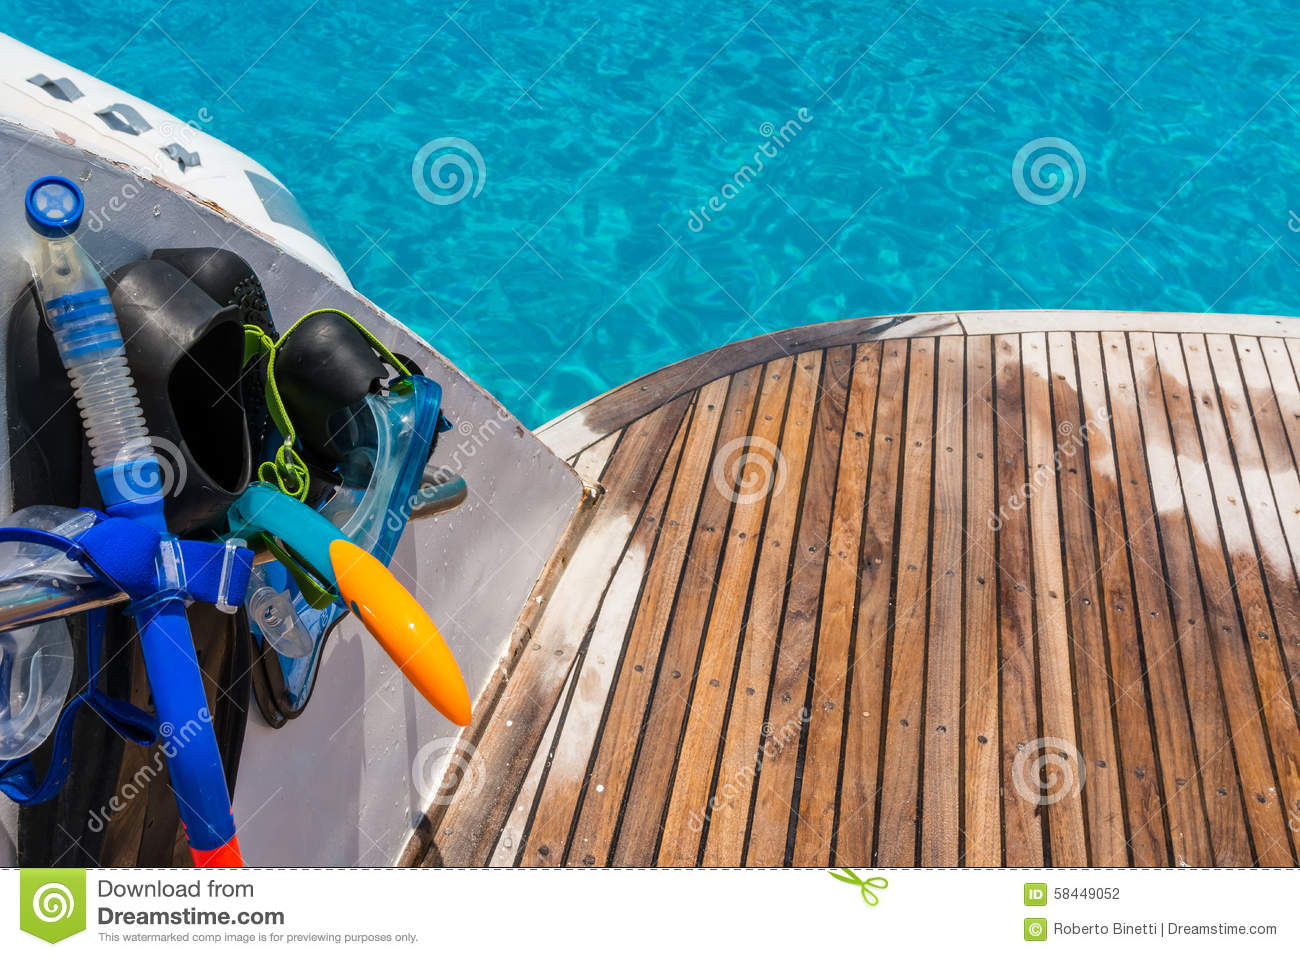 Snorkeling Time Stock Photo. Image Of Ocean, Boat, Mask